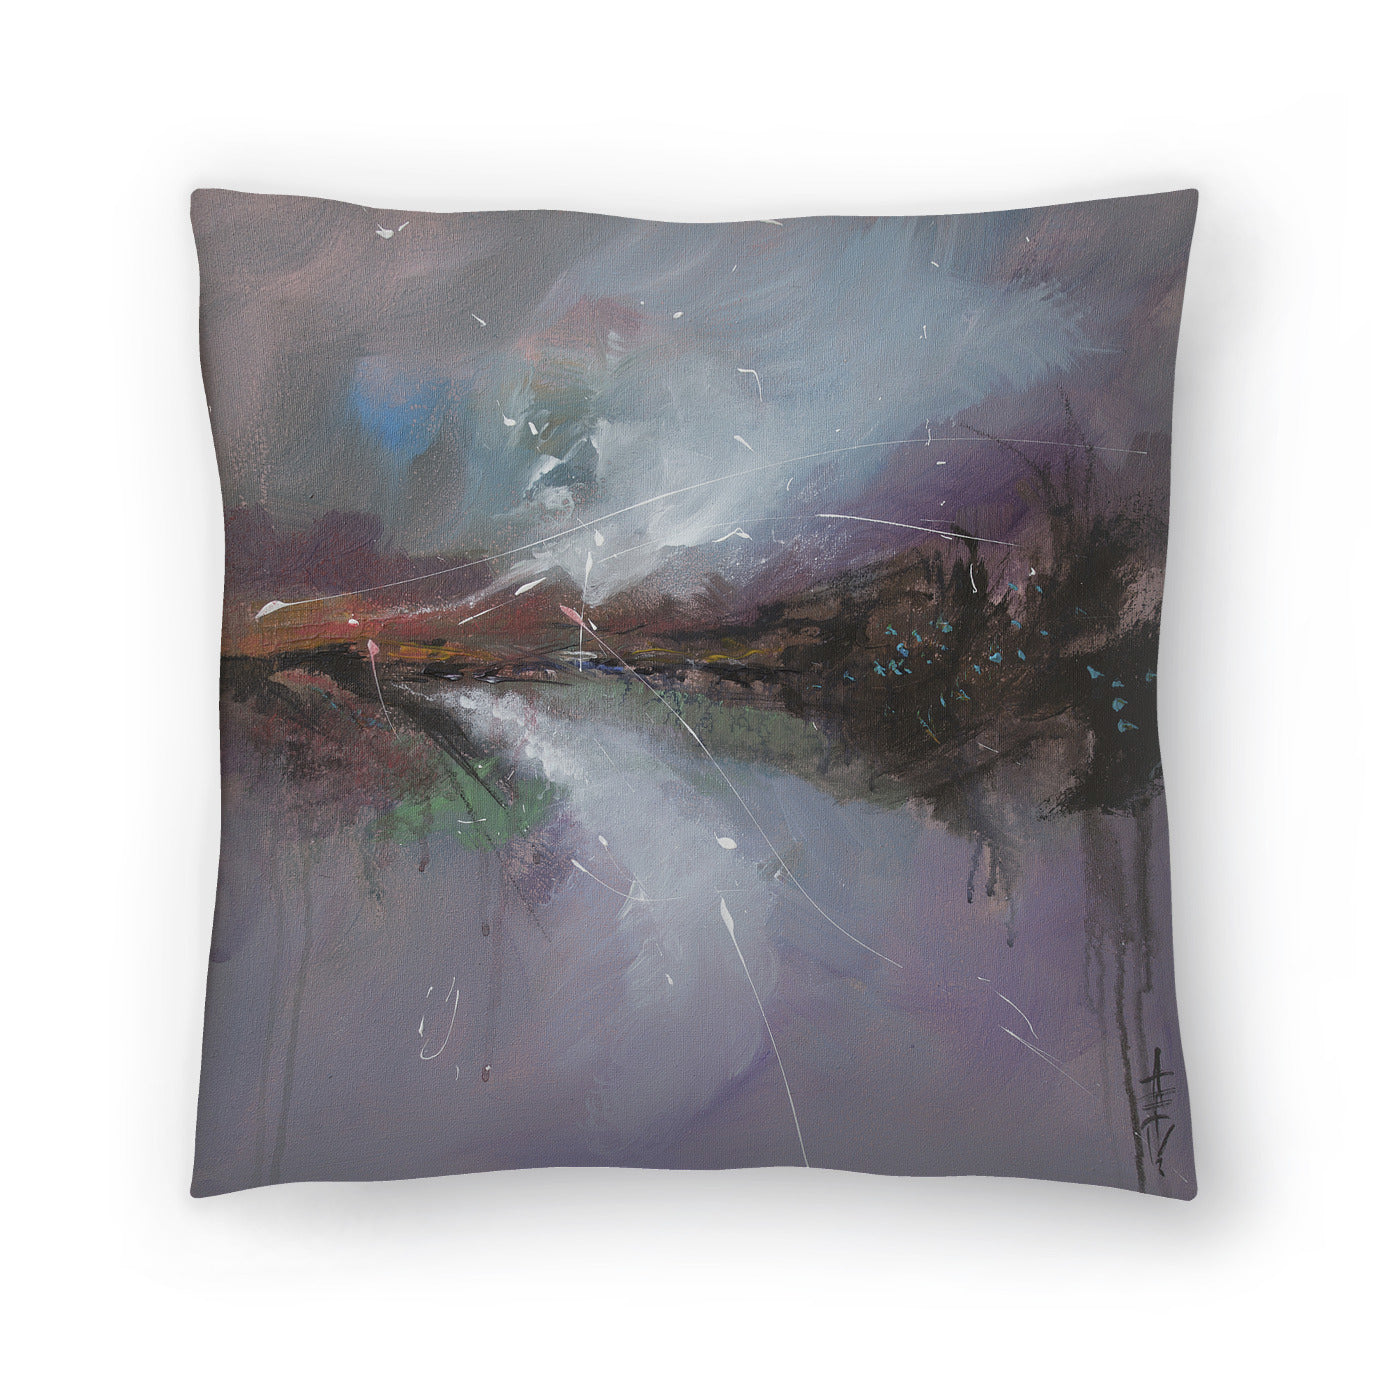 Embankment 2 by Anne Farrall Doyle Decorative Pillow - Decorative Pillow - Americanflat